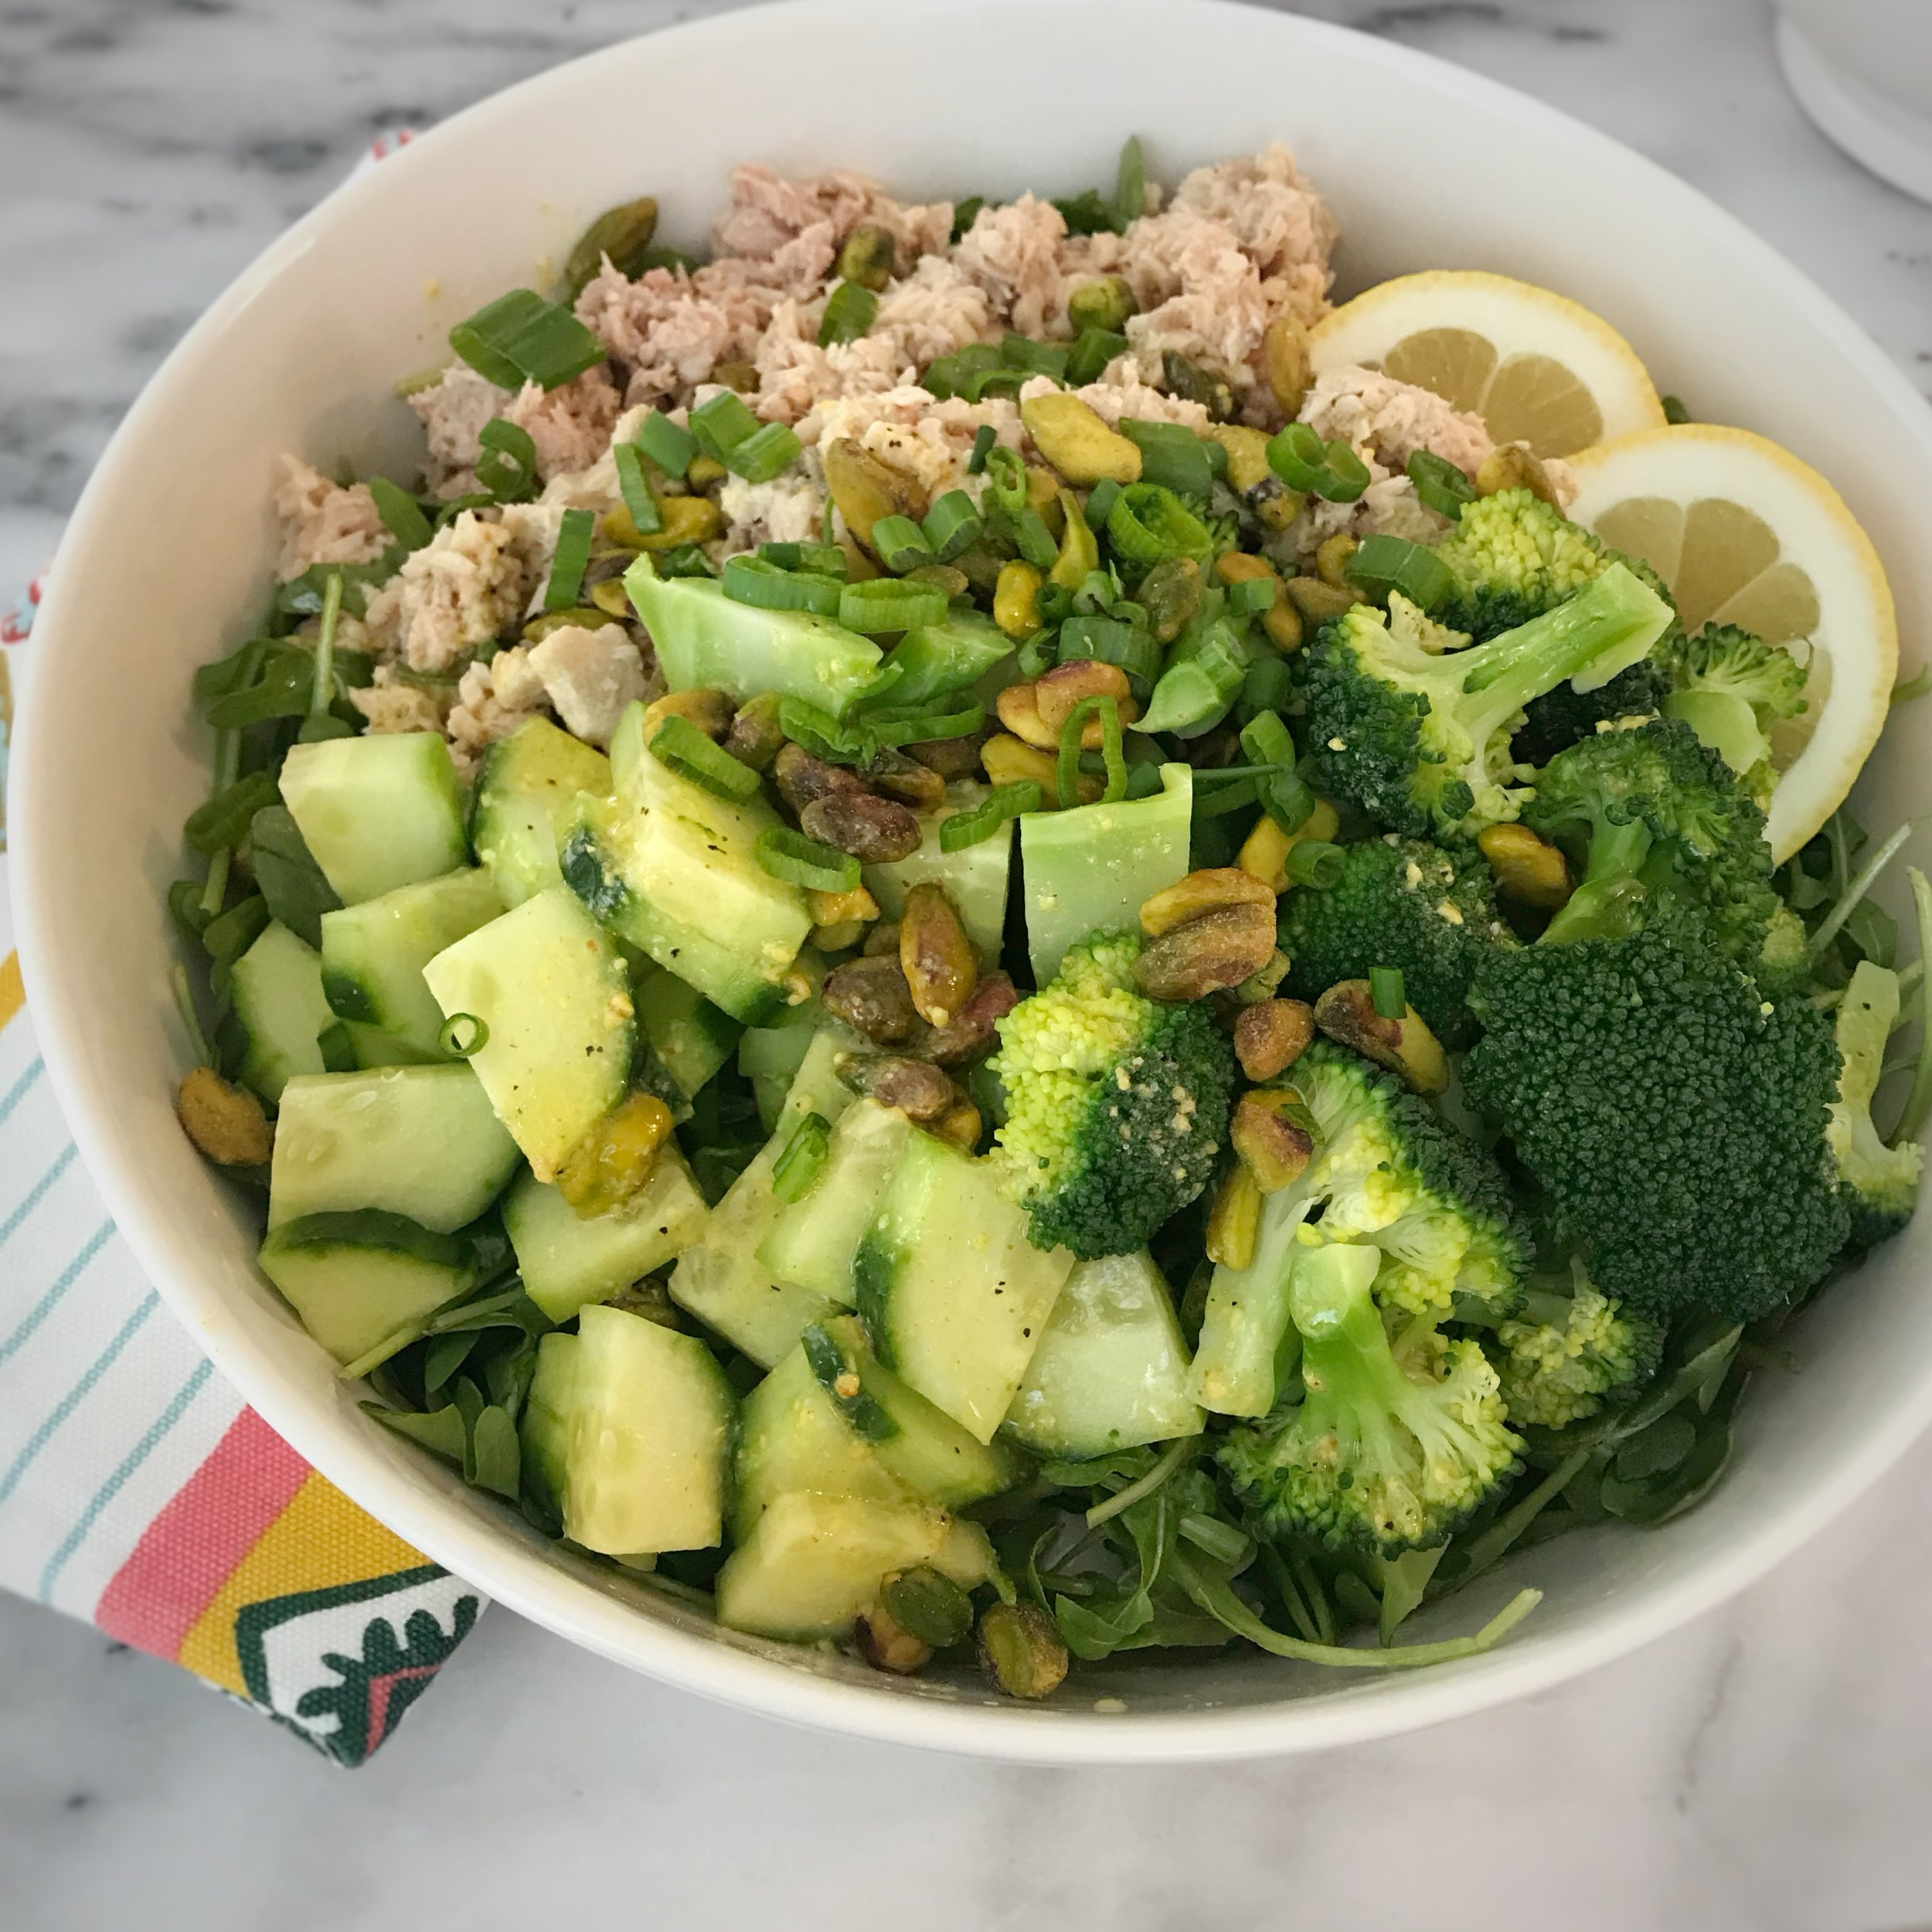 This is an under 10 minute meal that is easy to customize. Swap the veggies for your veggies of choice or swap the salmon for your favorite protein.